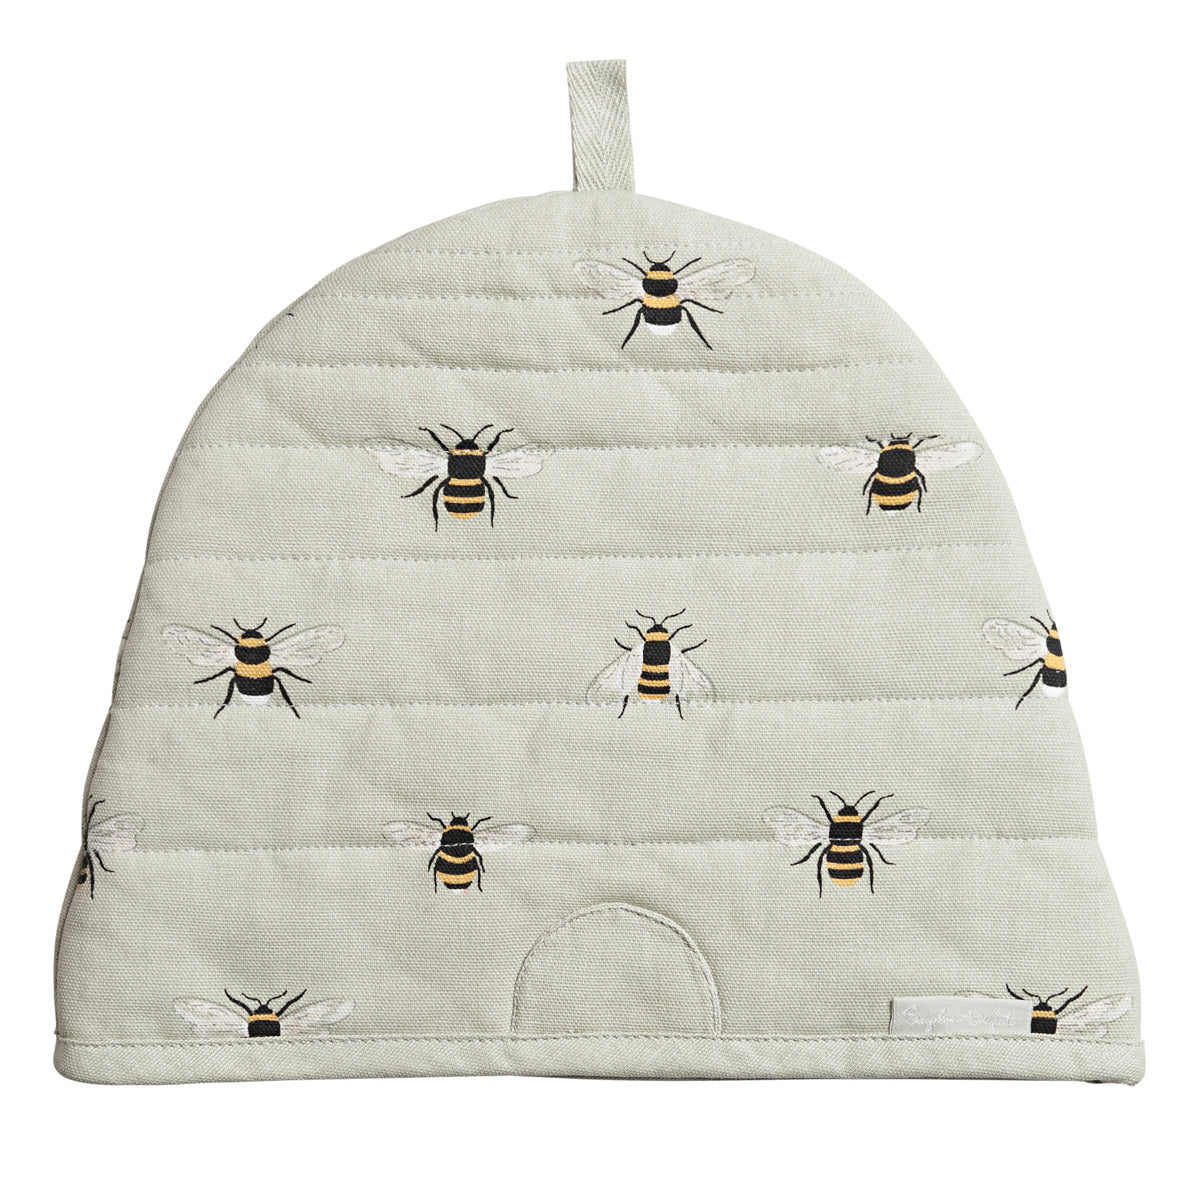 Beehive Shaped Tea Cosy